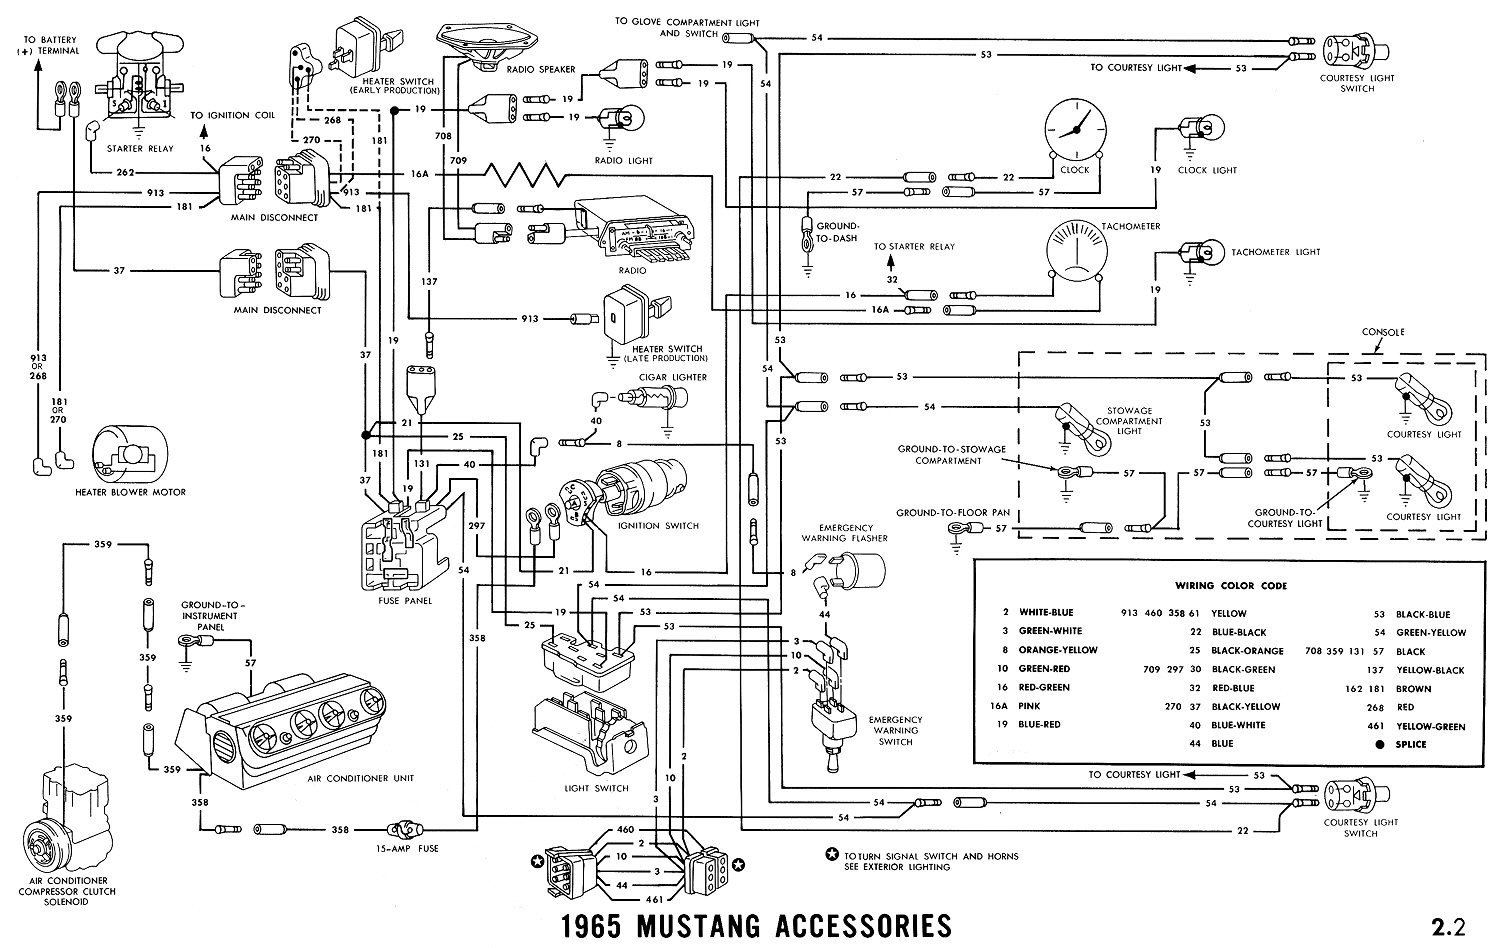 1965i 1965 mustang wiring diagrams average joe restoration 1969 mustang instrument cluster wiring diagram at n-0.co